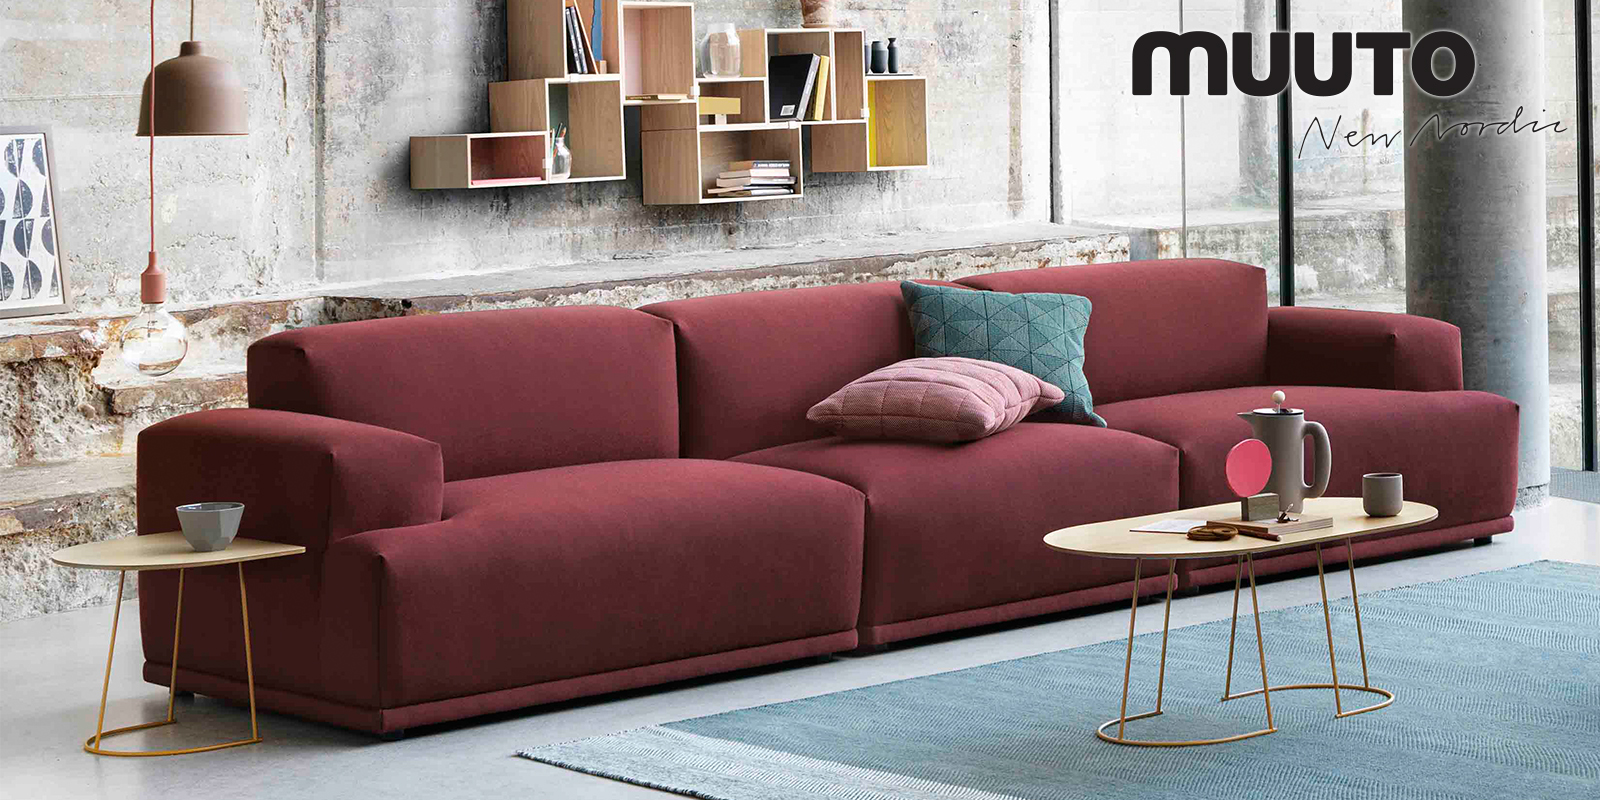 Muuto Connect Sofa, Airy Table